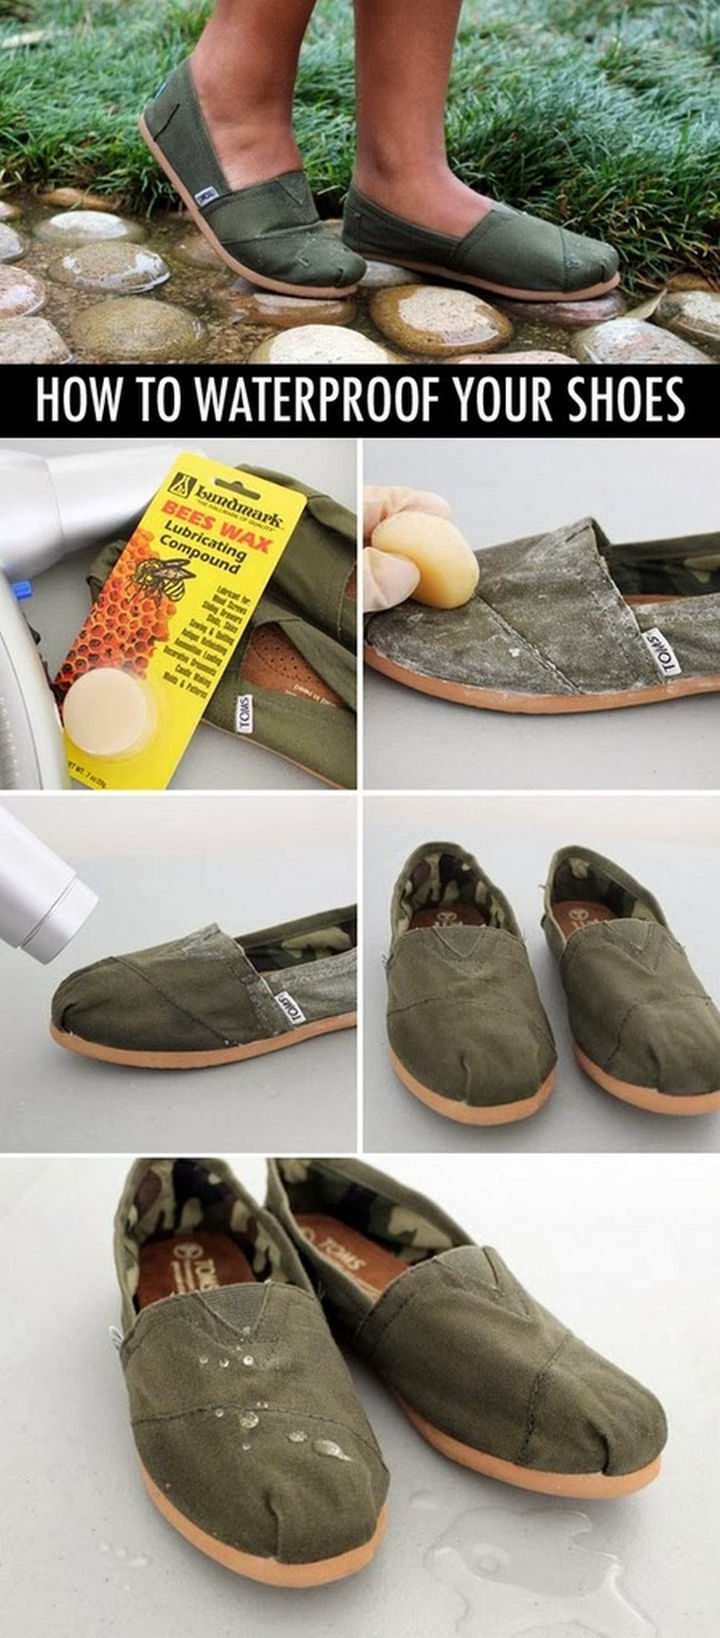 26 Simple Life Hacks - Waterproof canvas shoes with bees wax.